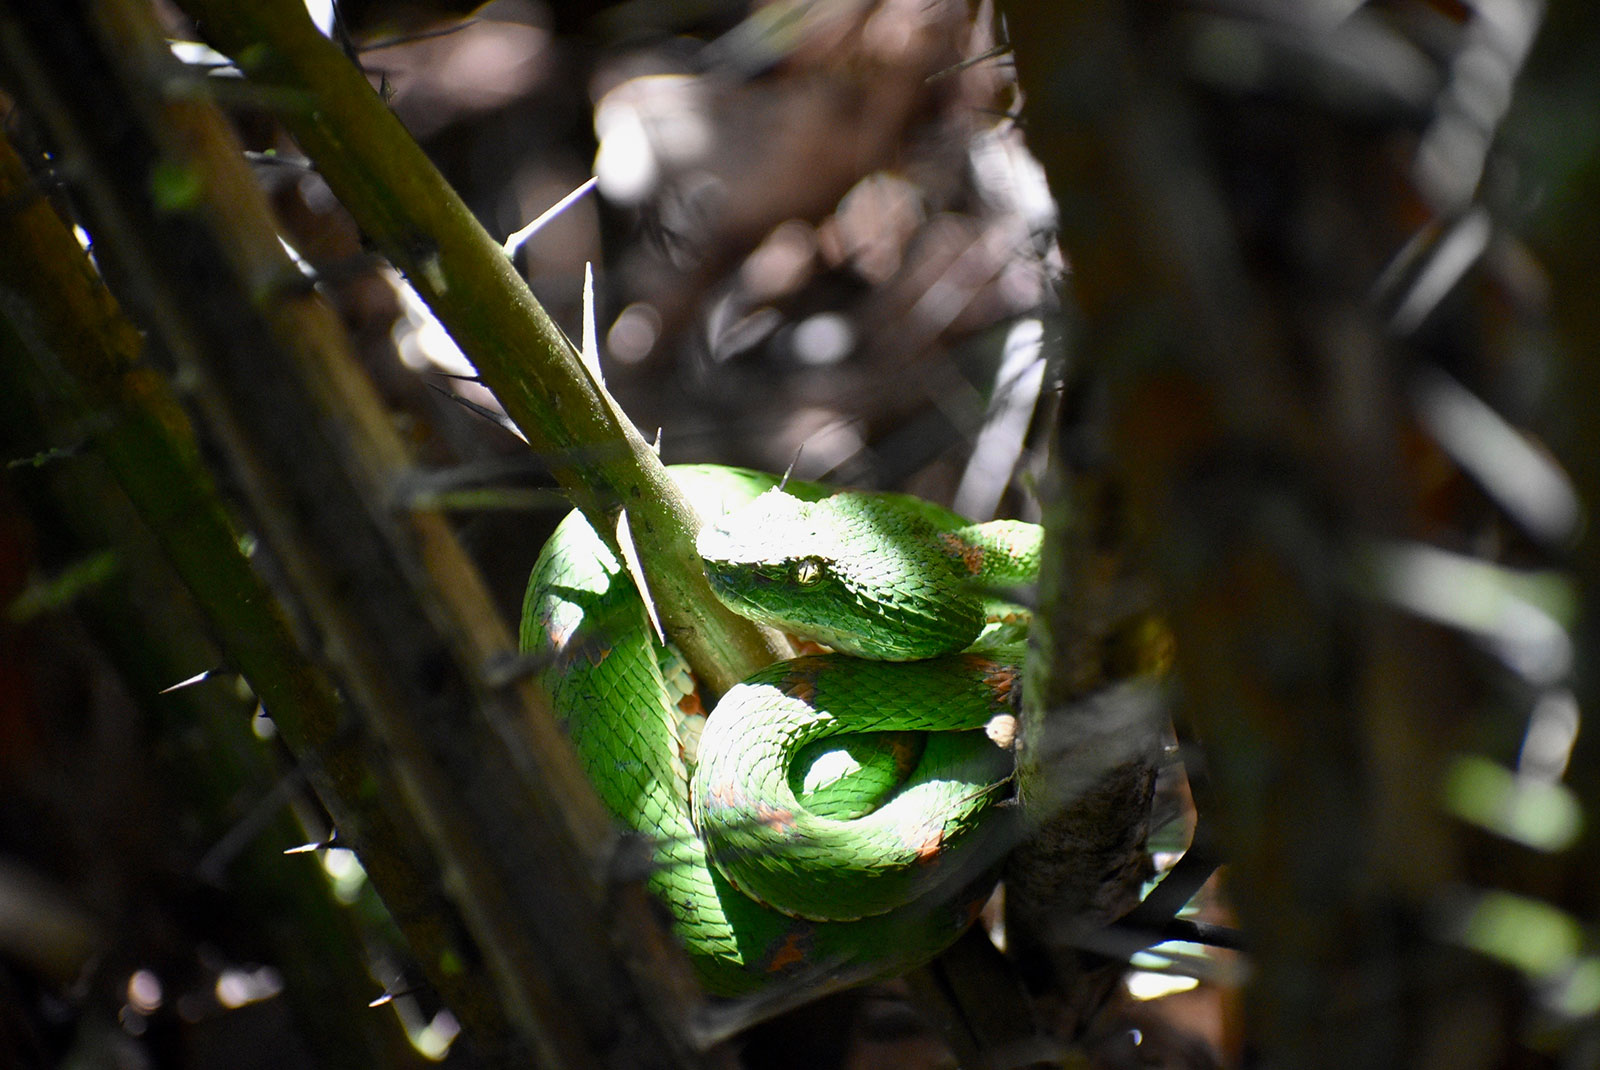 A bright green snake coiled among a thorny plant